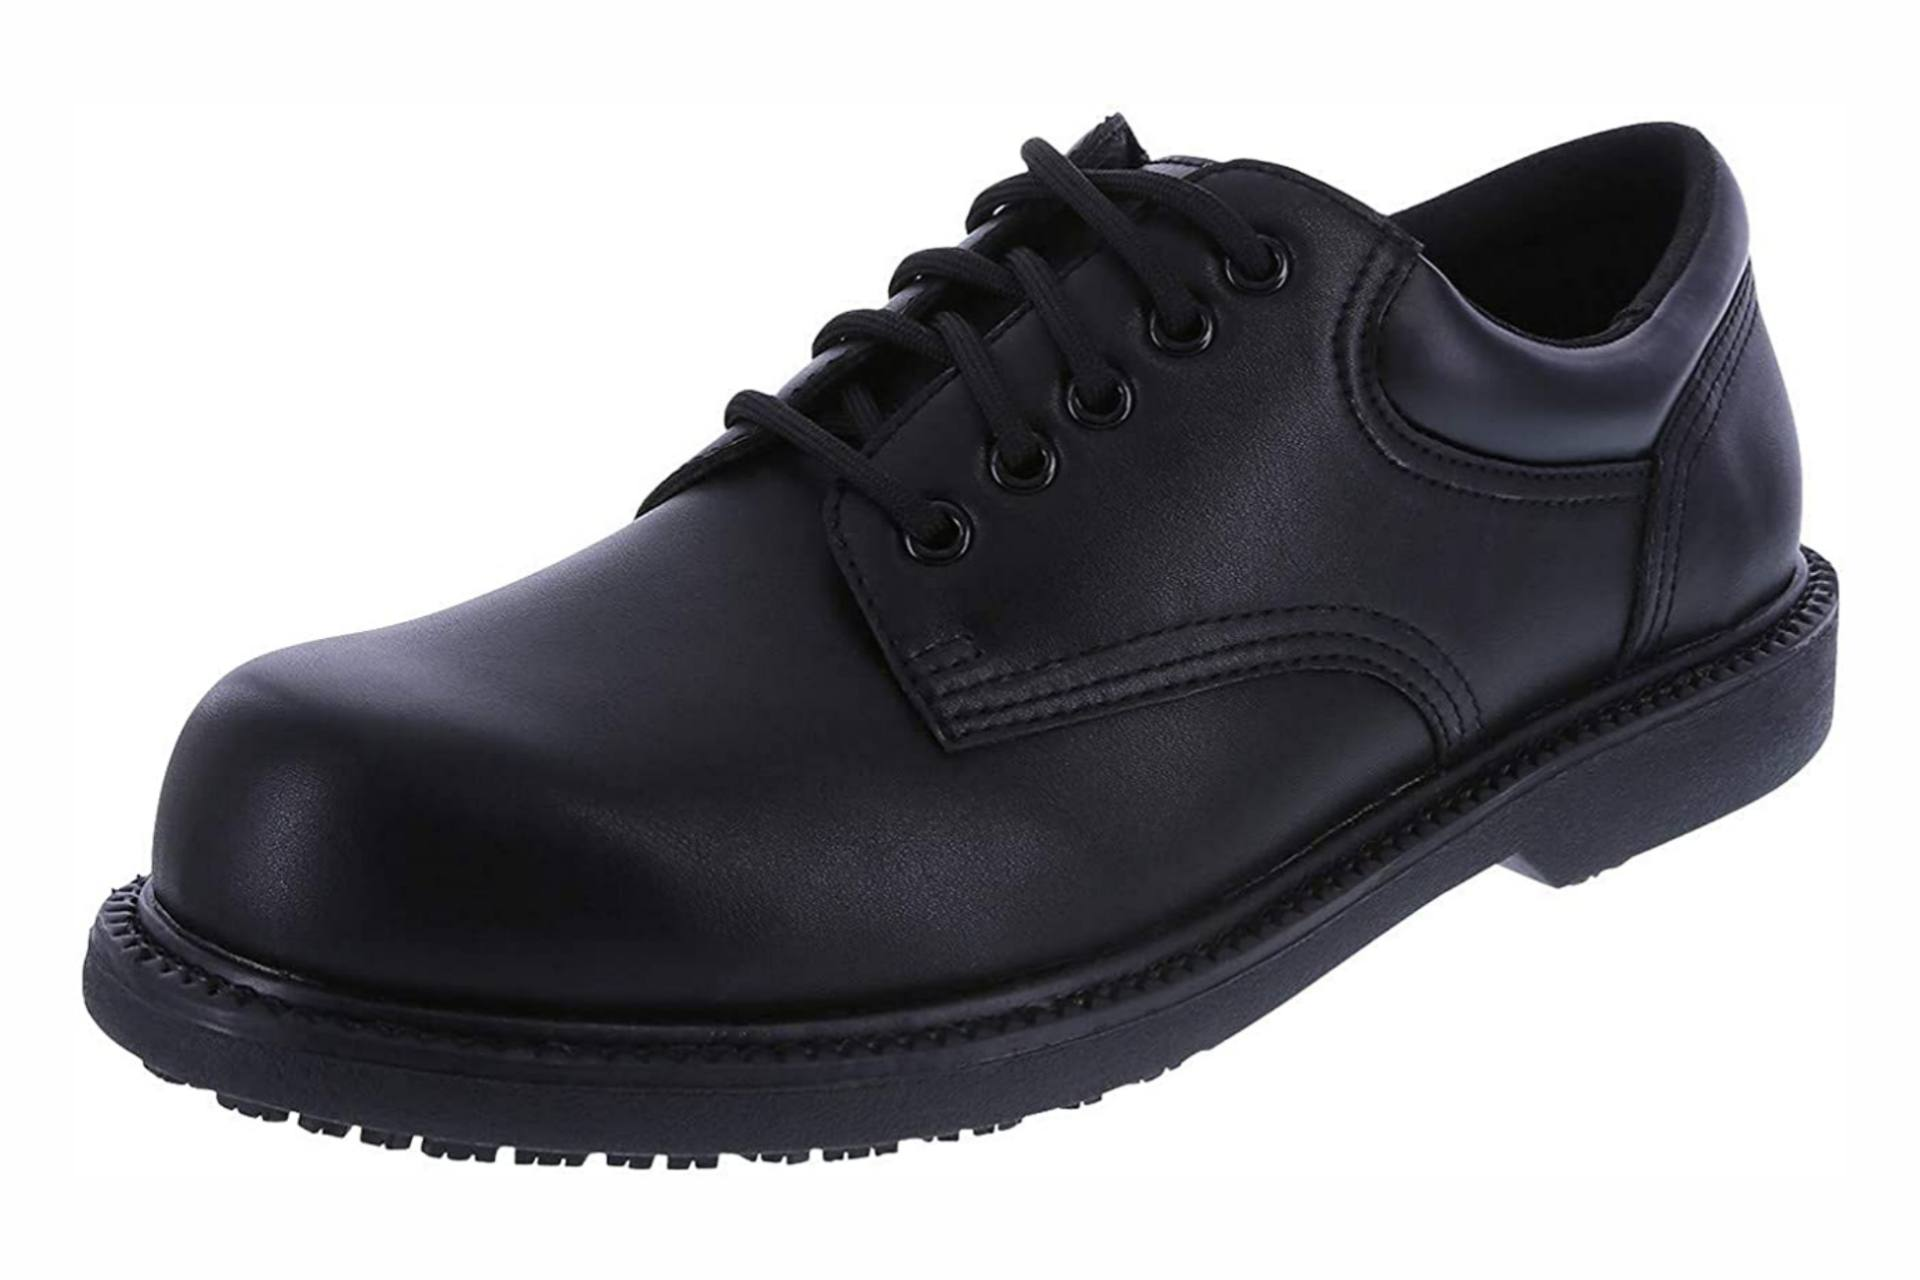 Quality dress shoes under $50